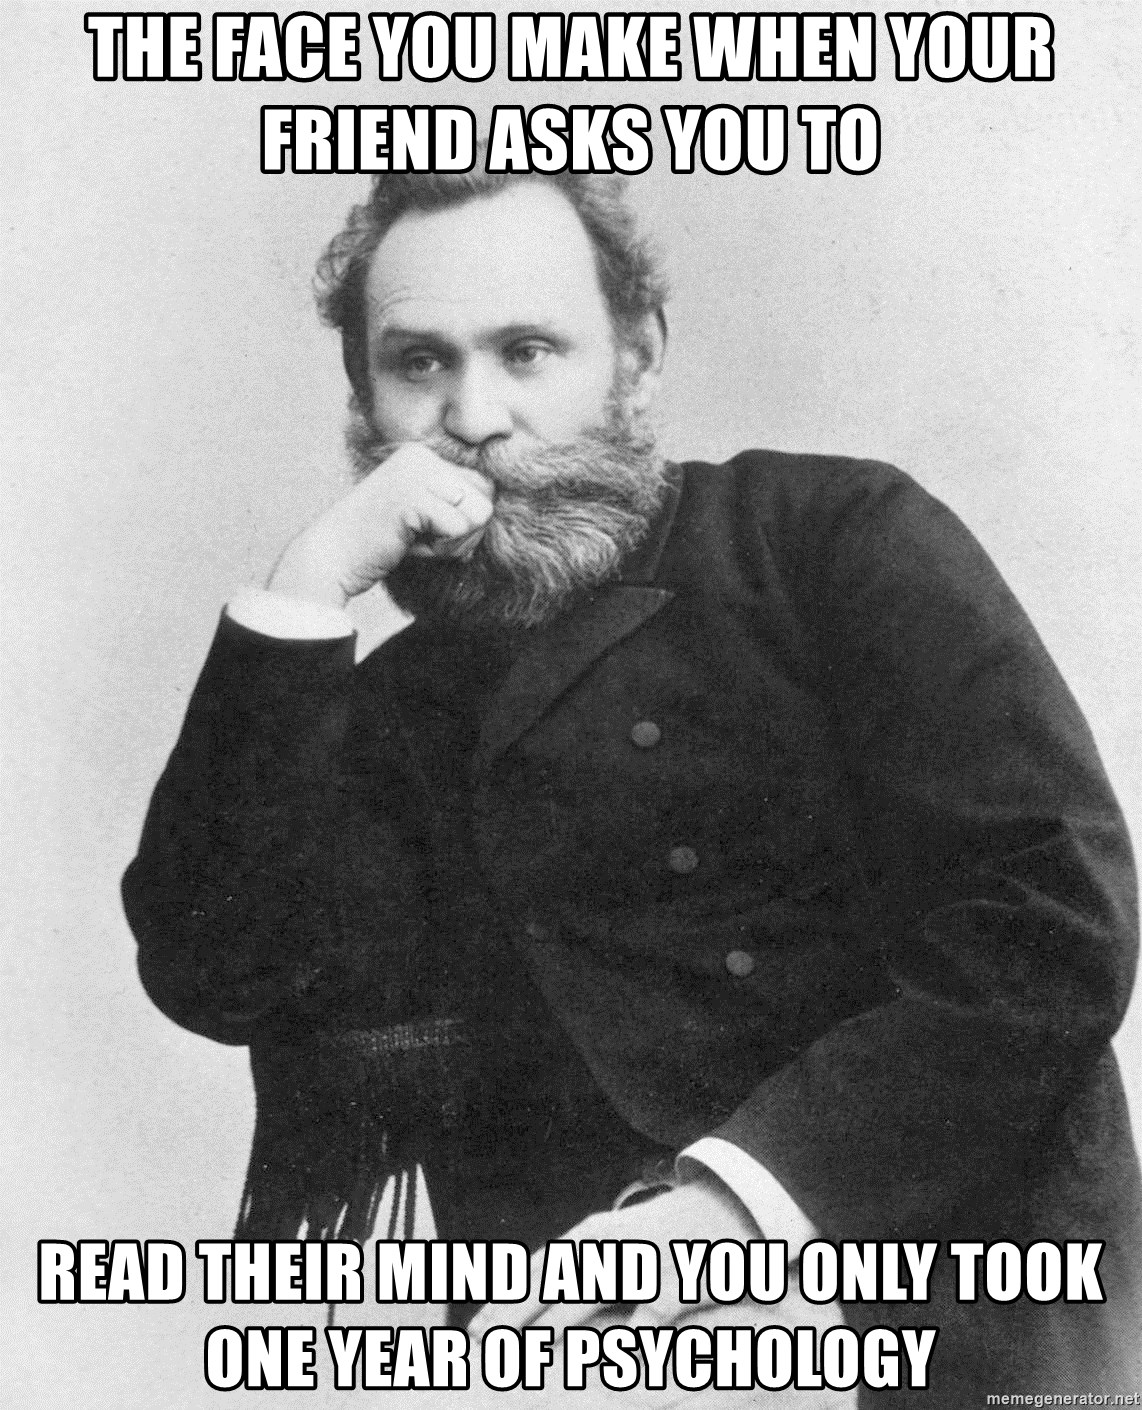 ivan pavlov - THE FACE YOU MAKE WHEN YOUR FRIEND ASKS YOU TO  READ THEIR MIND AND YOU ONLY TOOK ONE YEAR OF PSYCHOLOGY